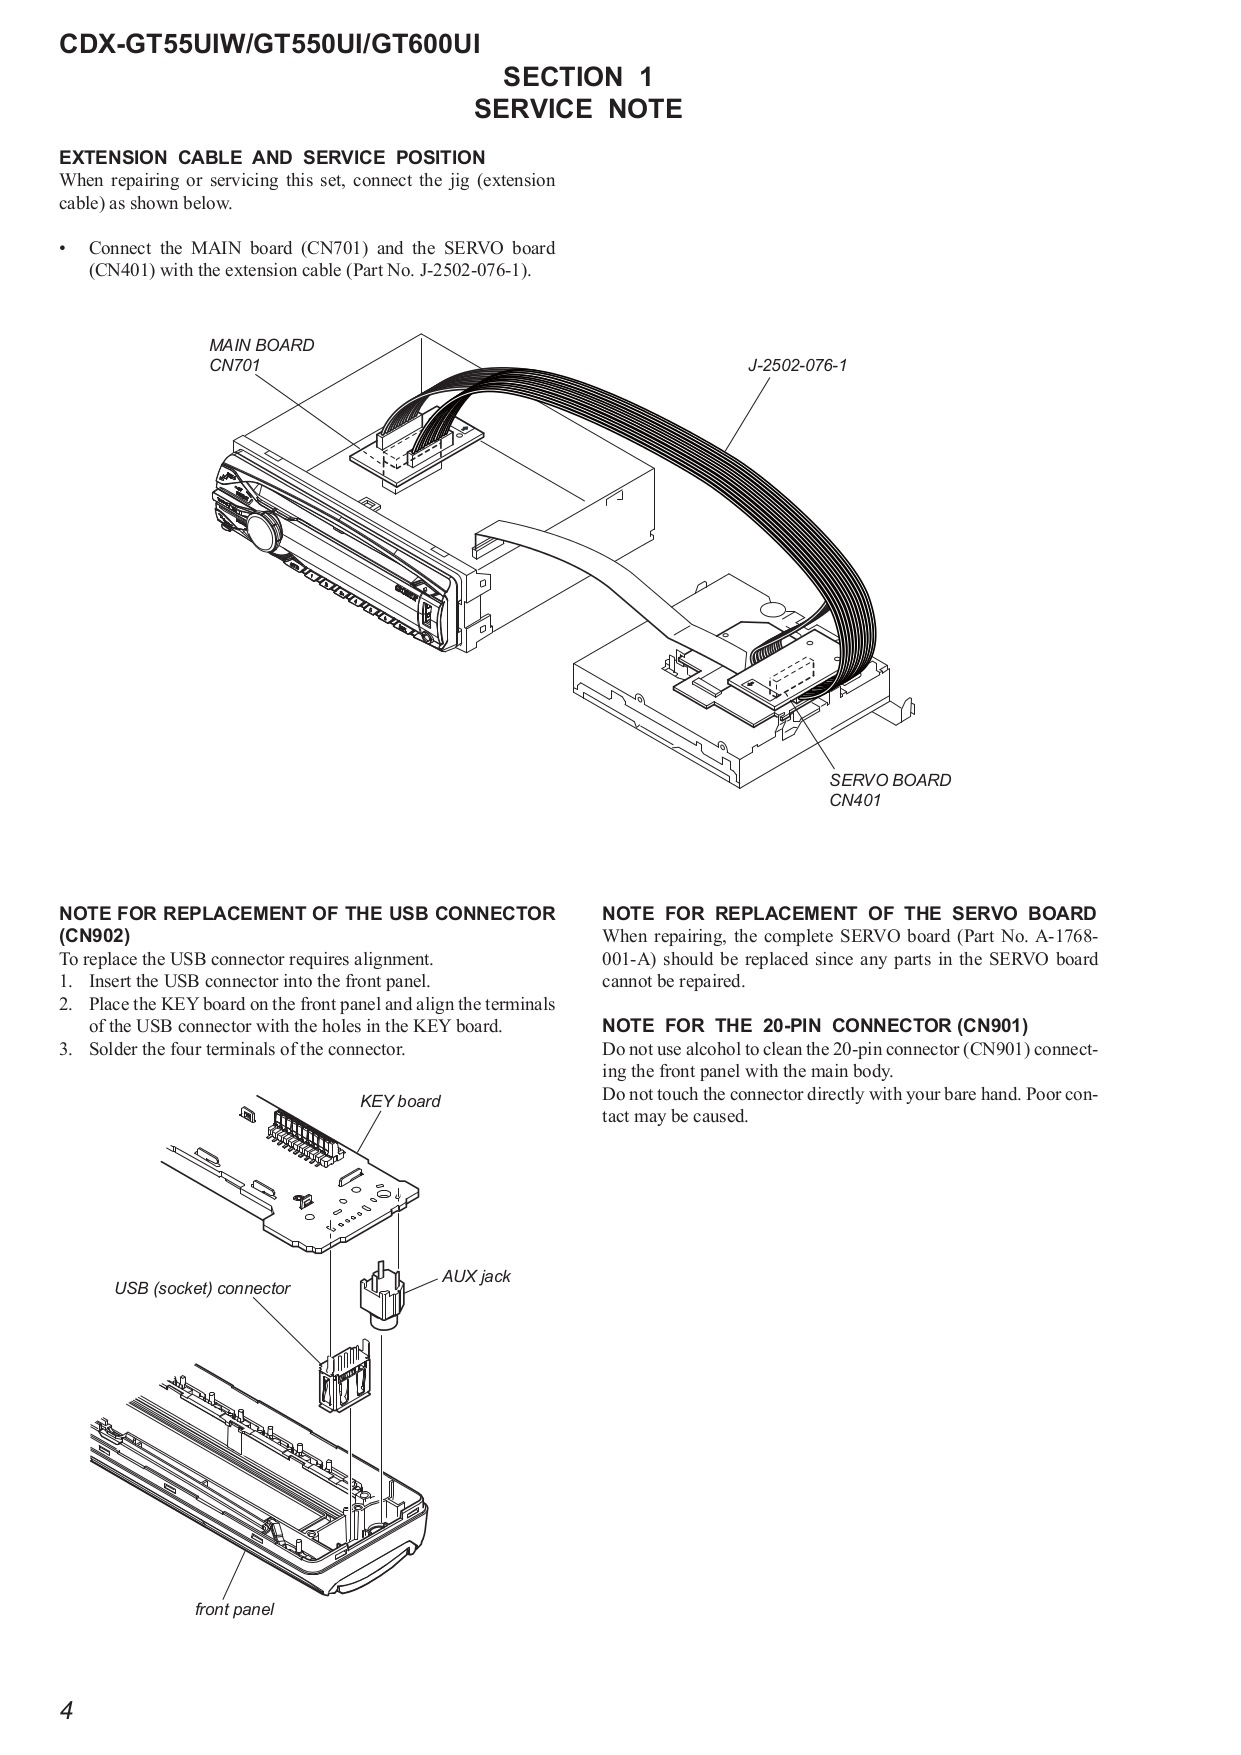 sony car receiver xplod cdx-gt55uiw pdf page preview